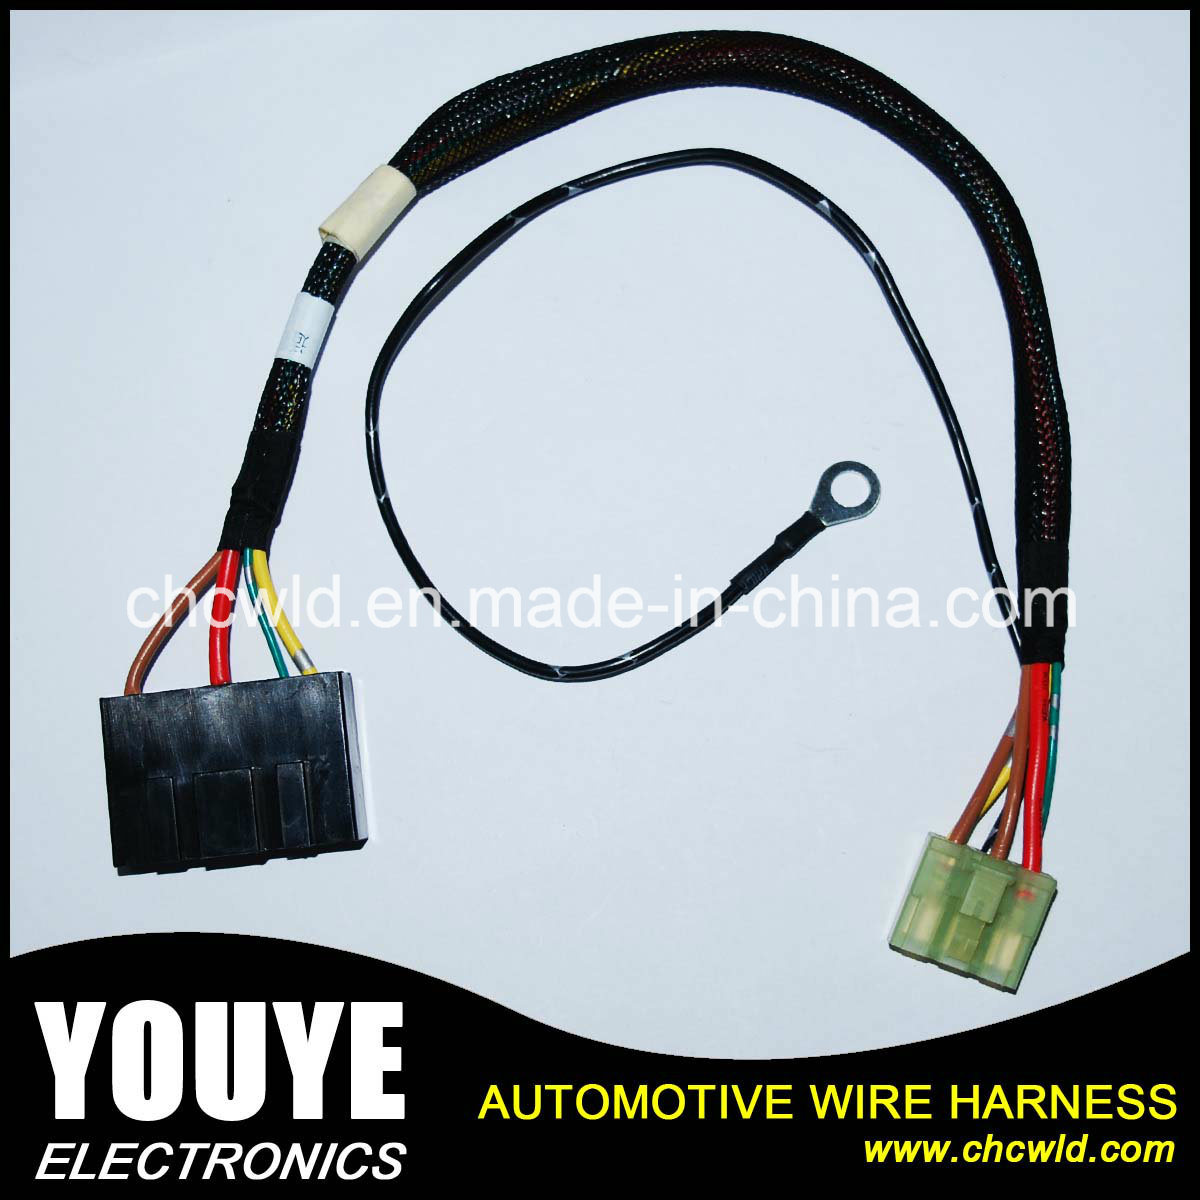 hight resolution of china electrical start wiring harness for automotive car china power windon wire harness electrical cable